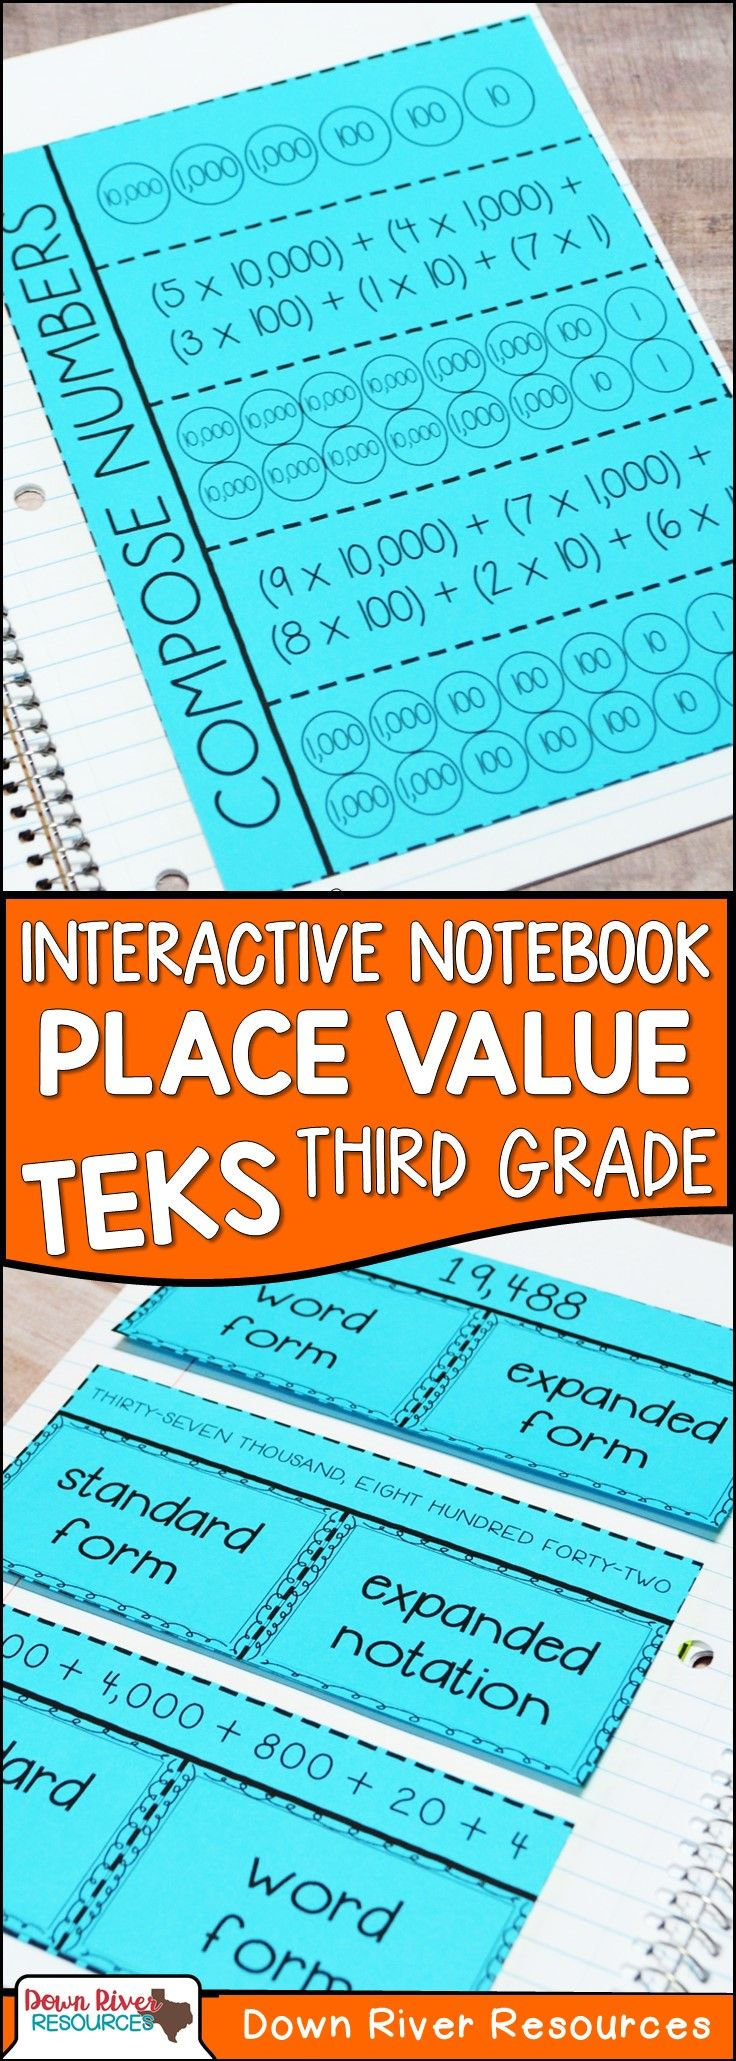 20 best Place Value images on Pinterest | Elementary schools, Math ...